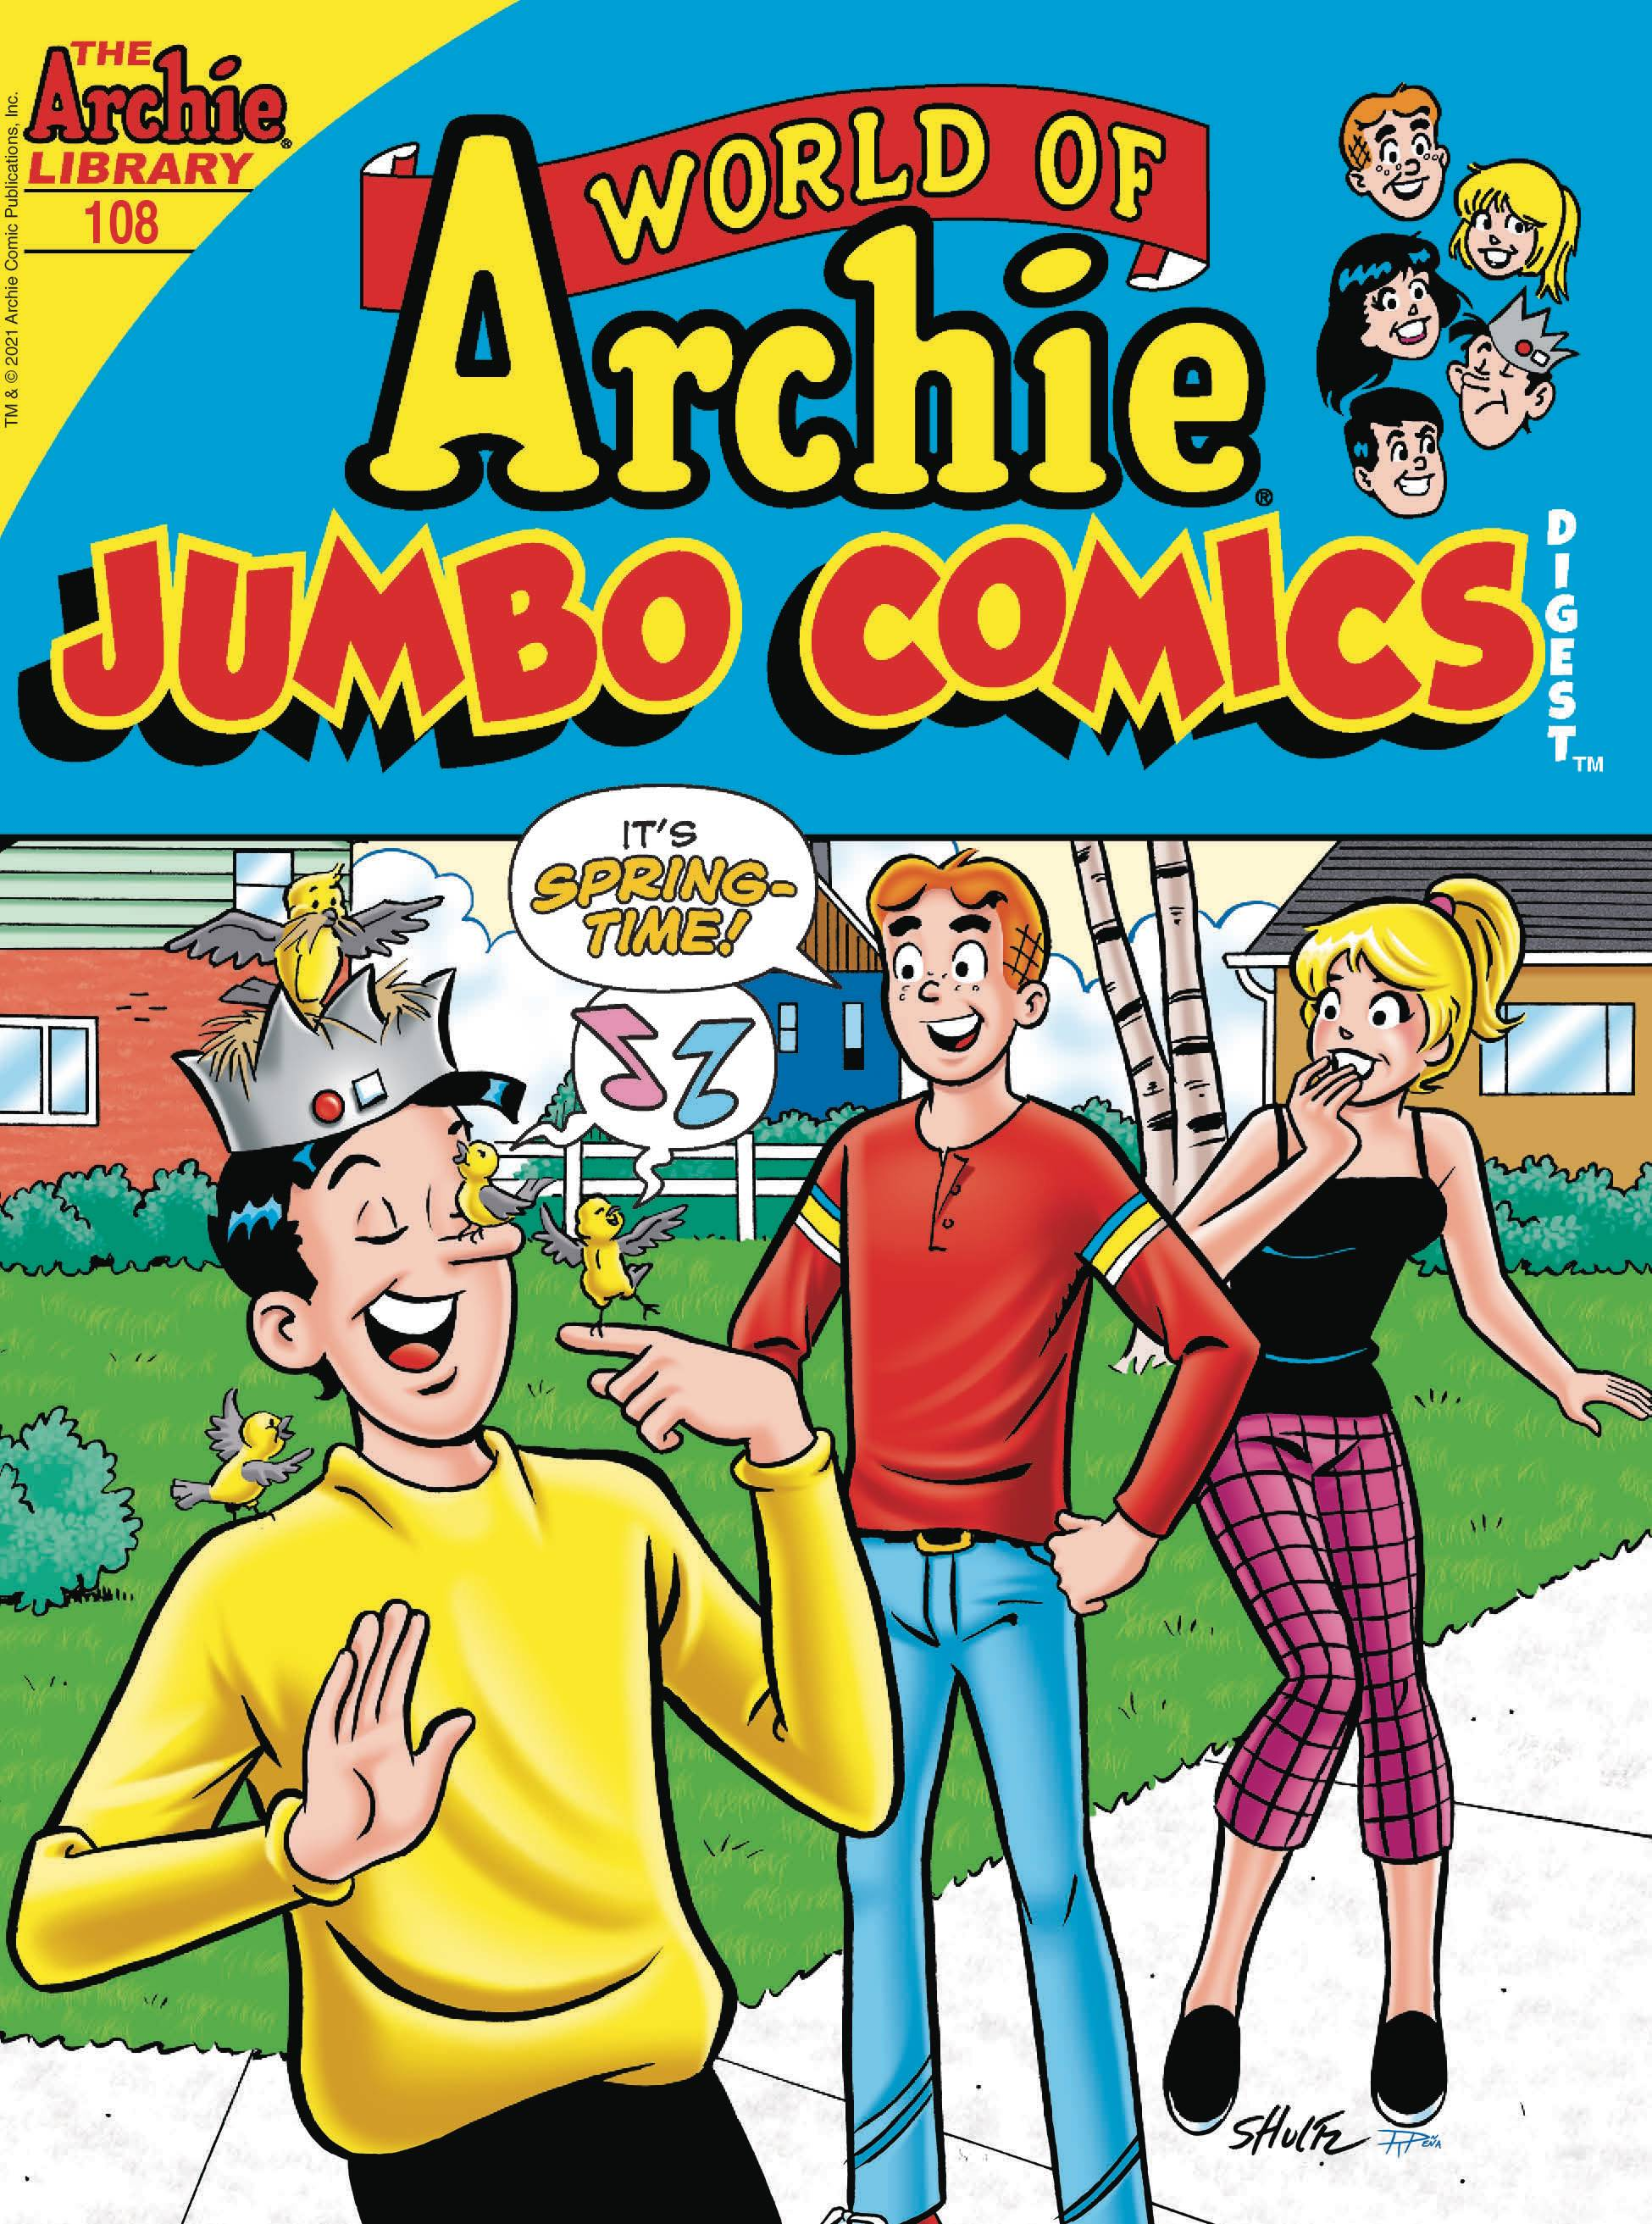 WORLD OF ARCHIE JUMBO COMICS DIGEST #108 PRE-ORDER